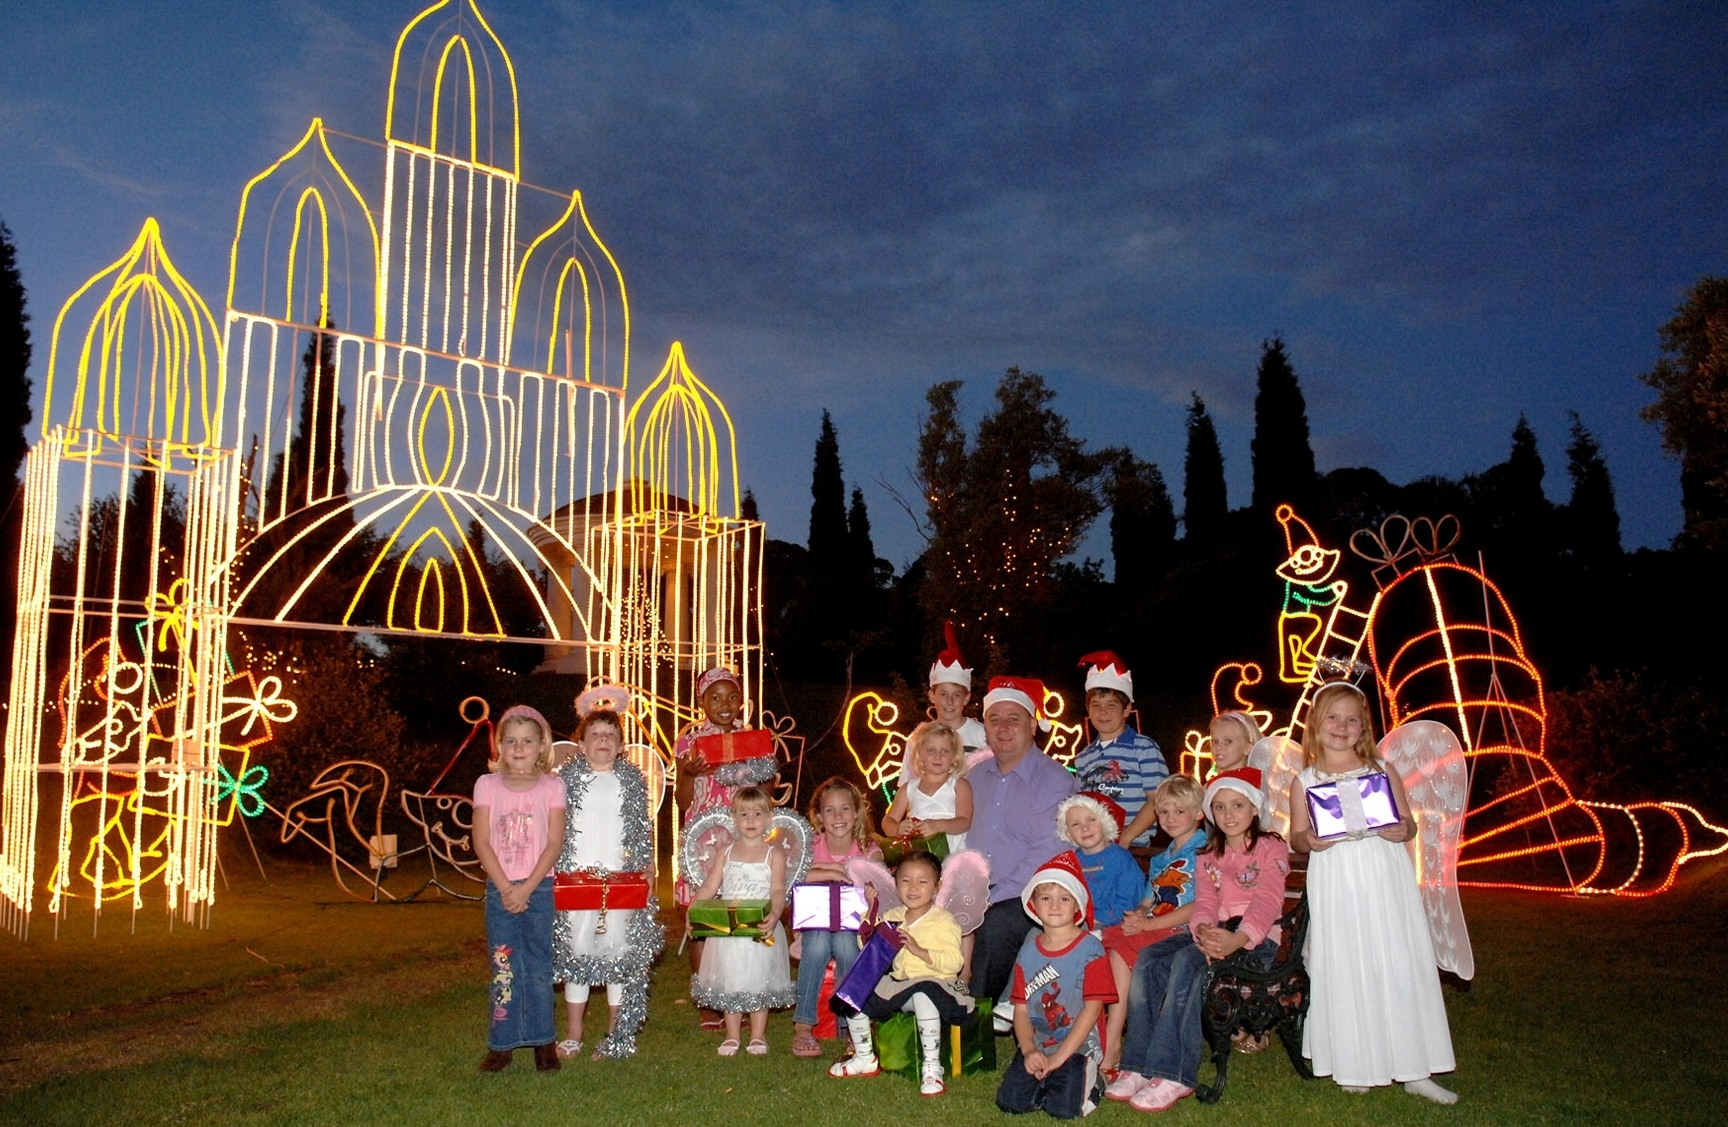 Peermont | Press Room | Celebrate The Festive Season With The throughout Garden Of Light At Emperors Palace